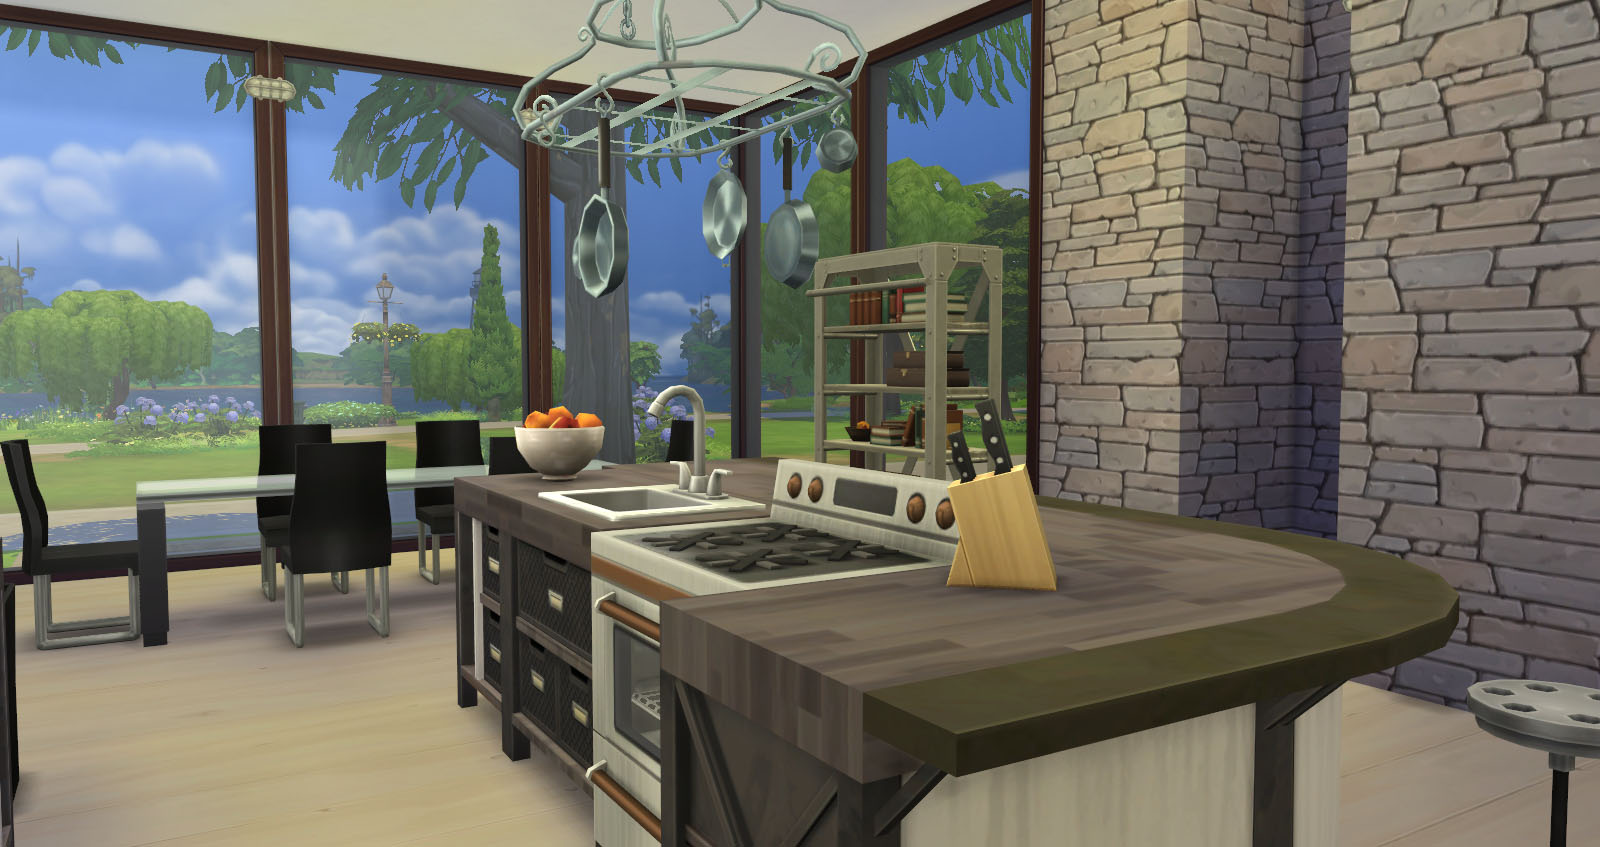 The Inside Is As Light An Airy You Can Get In Sims4 Without A Lighting Mod Kitchen Dining Similar To Midori Uchi Because That S My Favorite Out